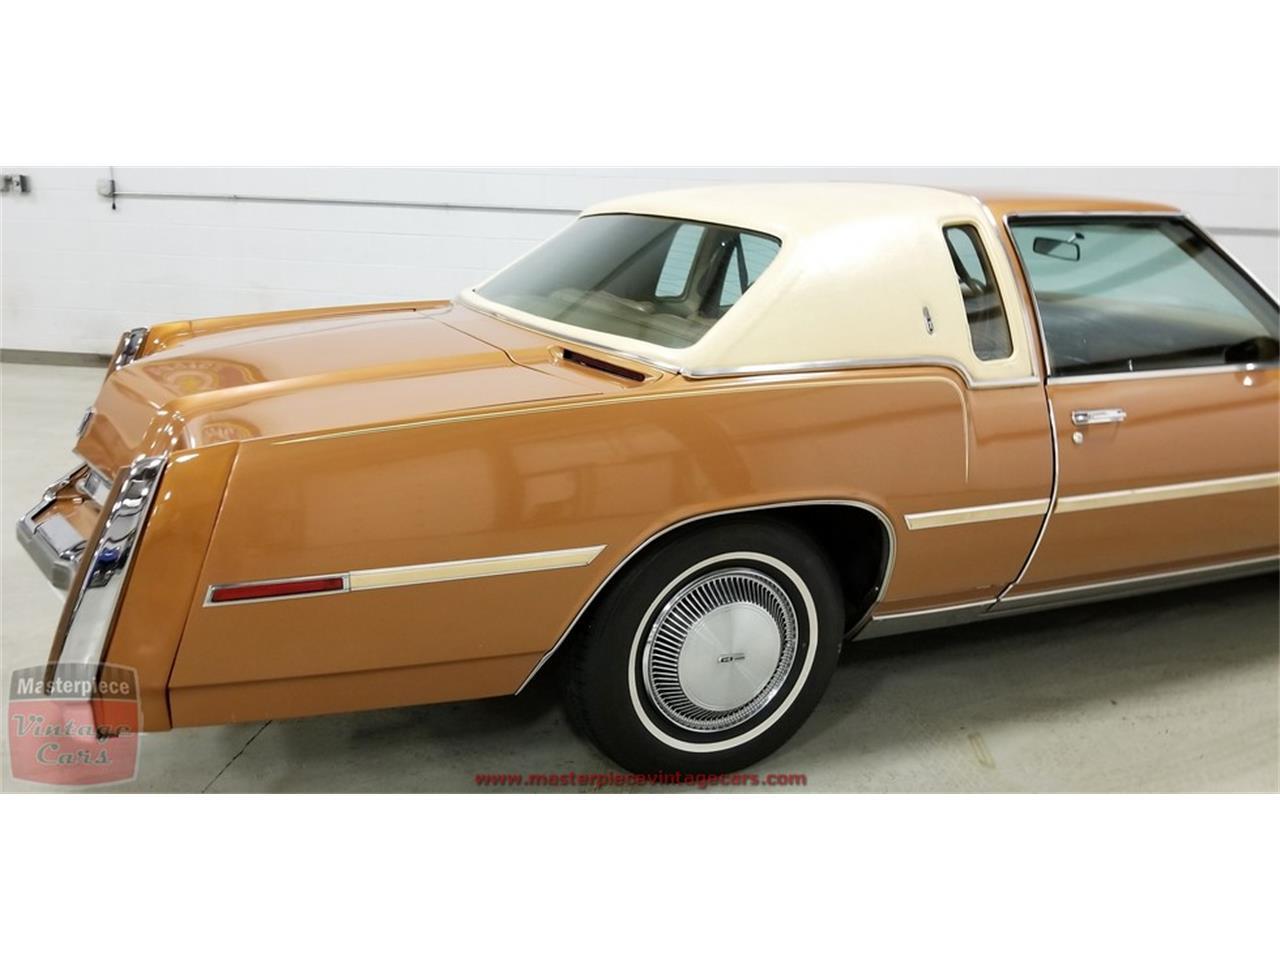 Large Picture of 1978 Toronado - $10,900.00 Offered by Masterpiece Vintage Cars - QE6N